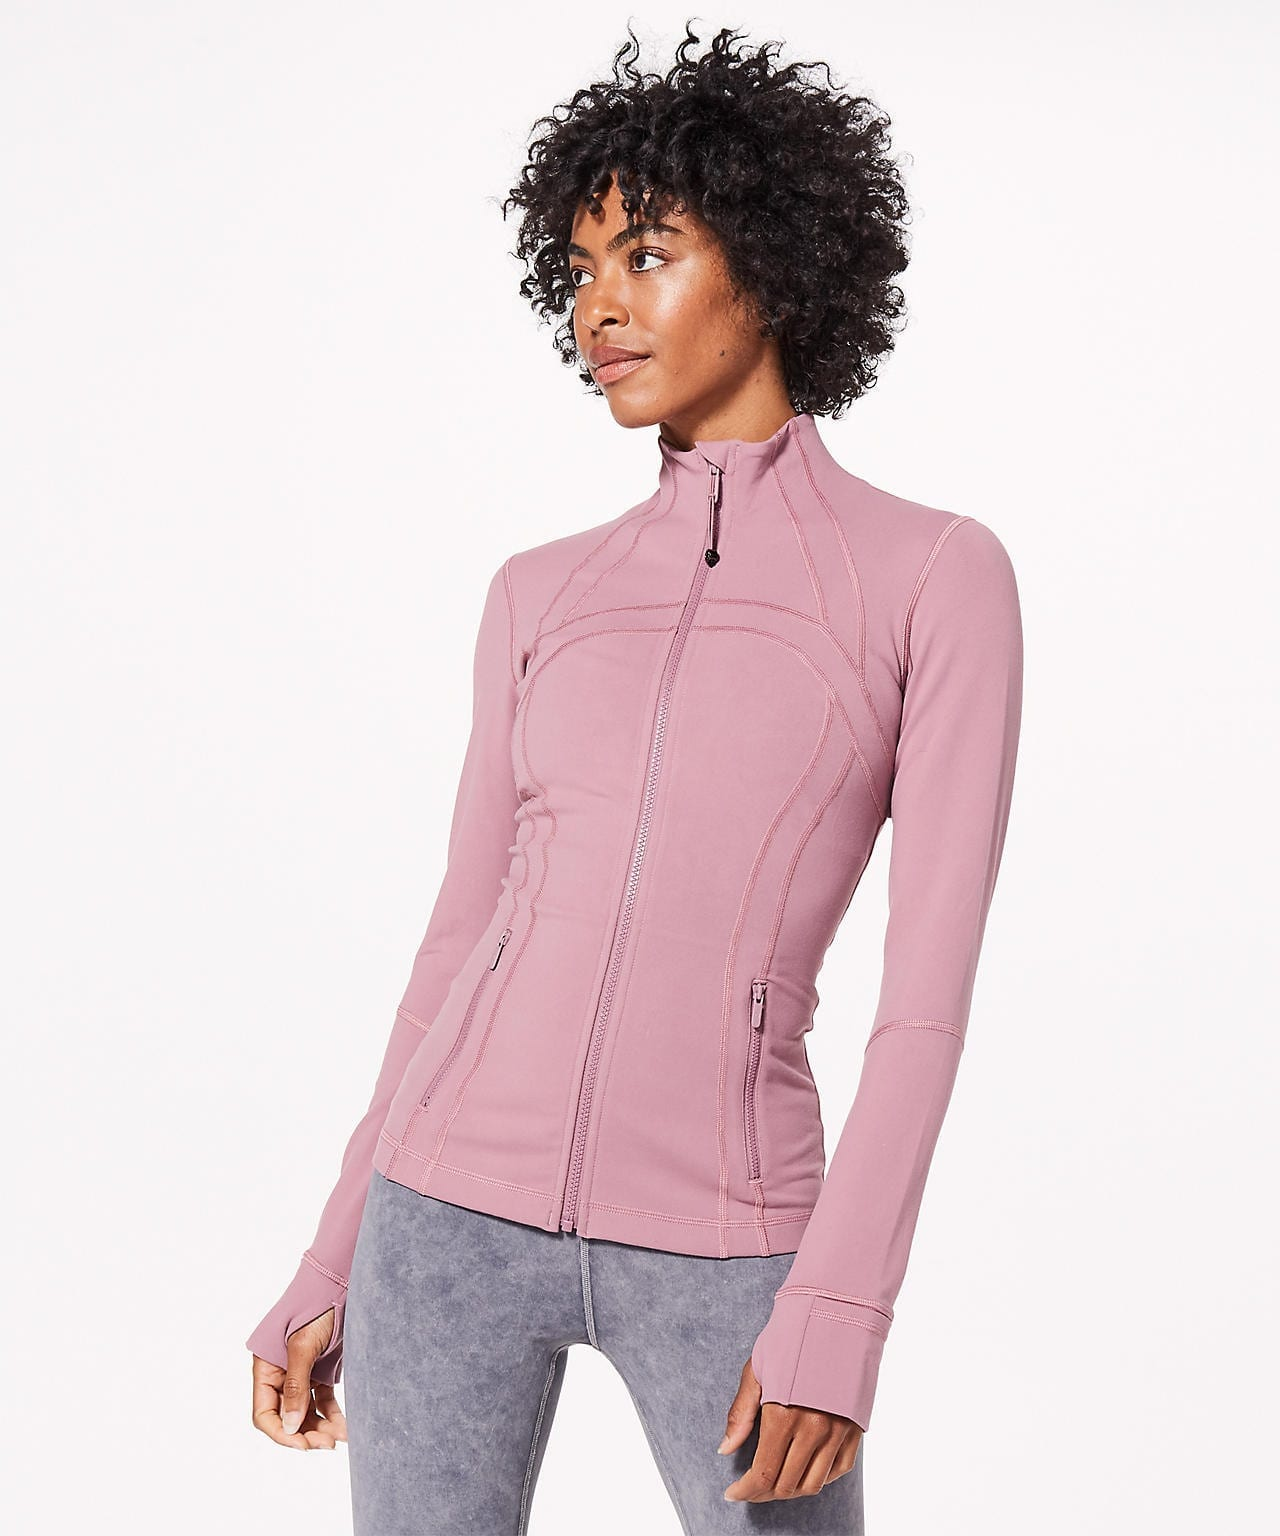 Define Jacket, Check Out What's New At Lululemon